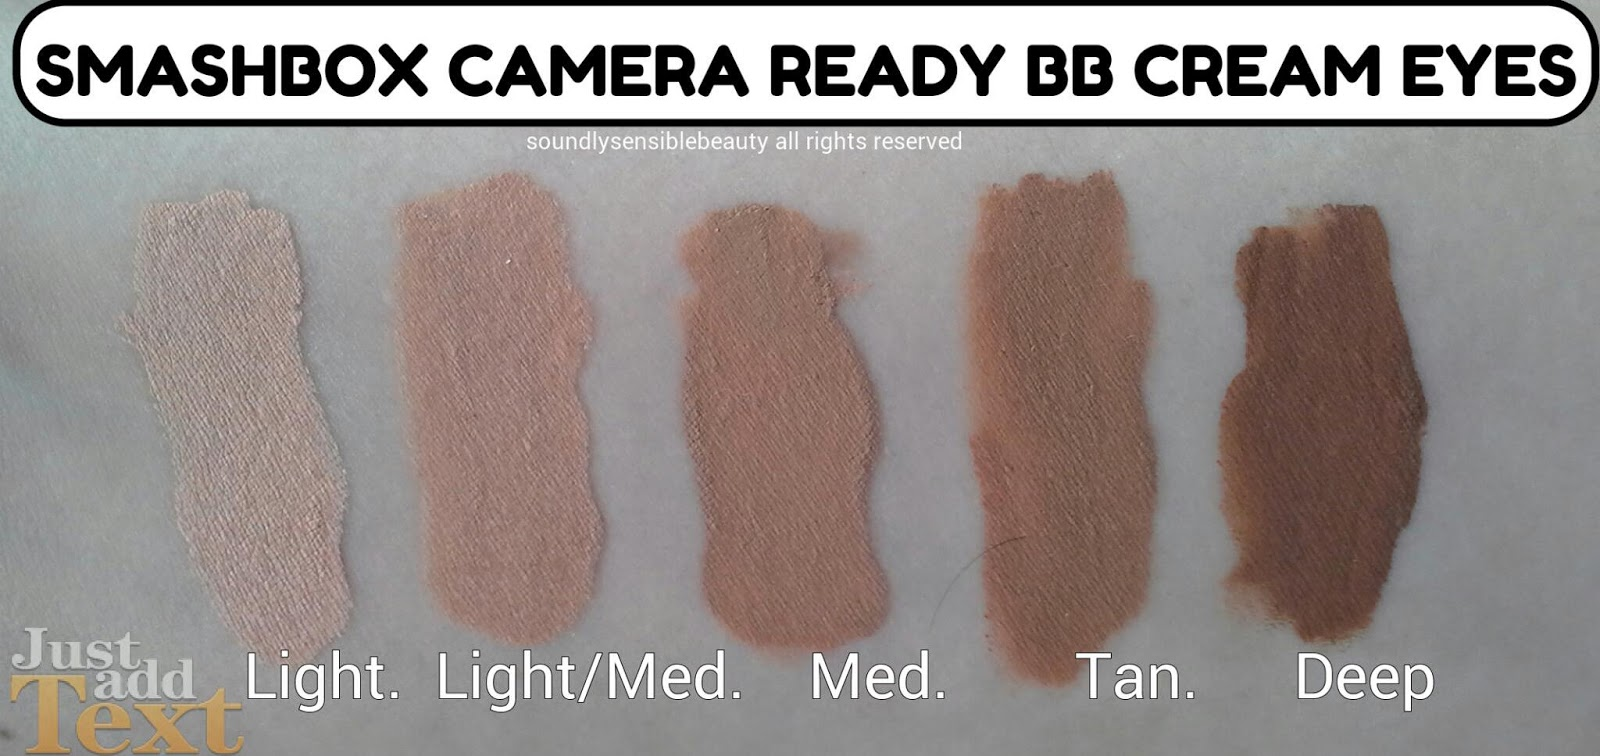 Smashbox BB Cream Eyes Concealer; Review & Swatches of Shades